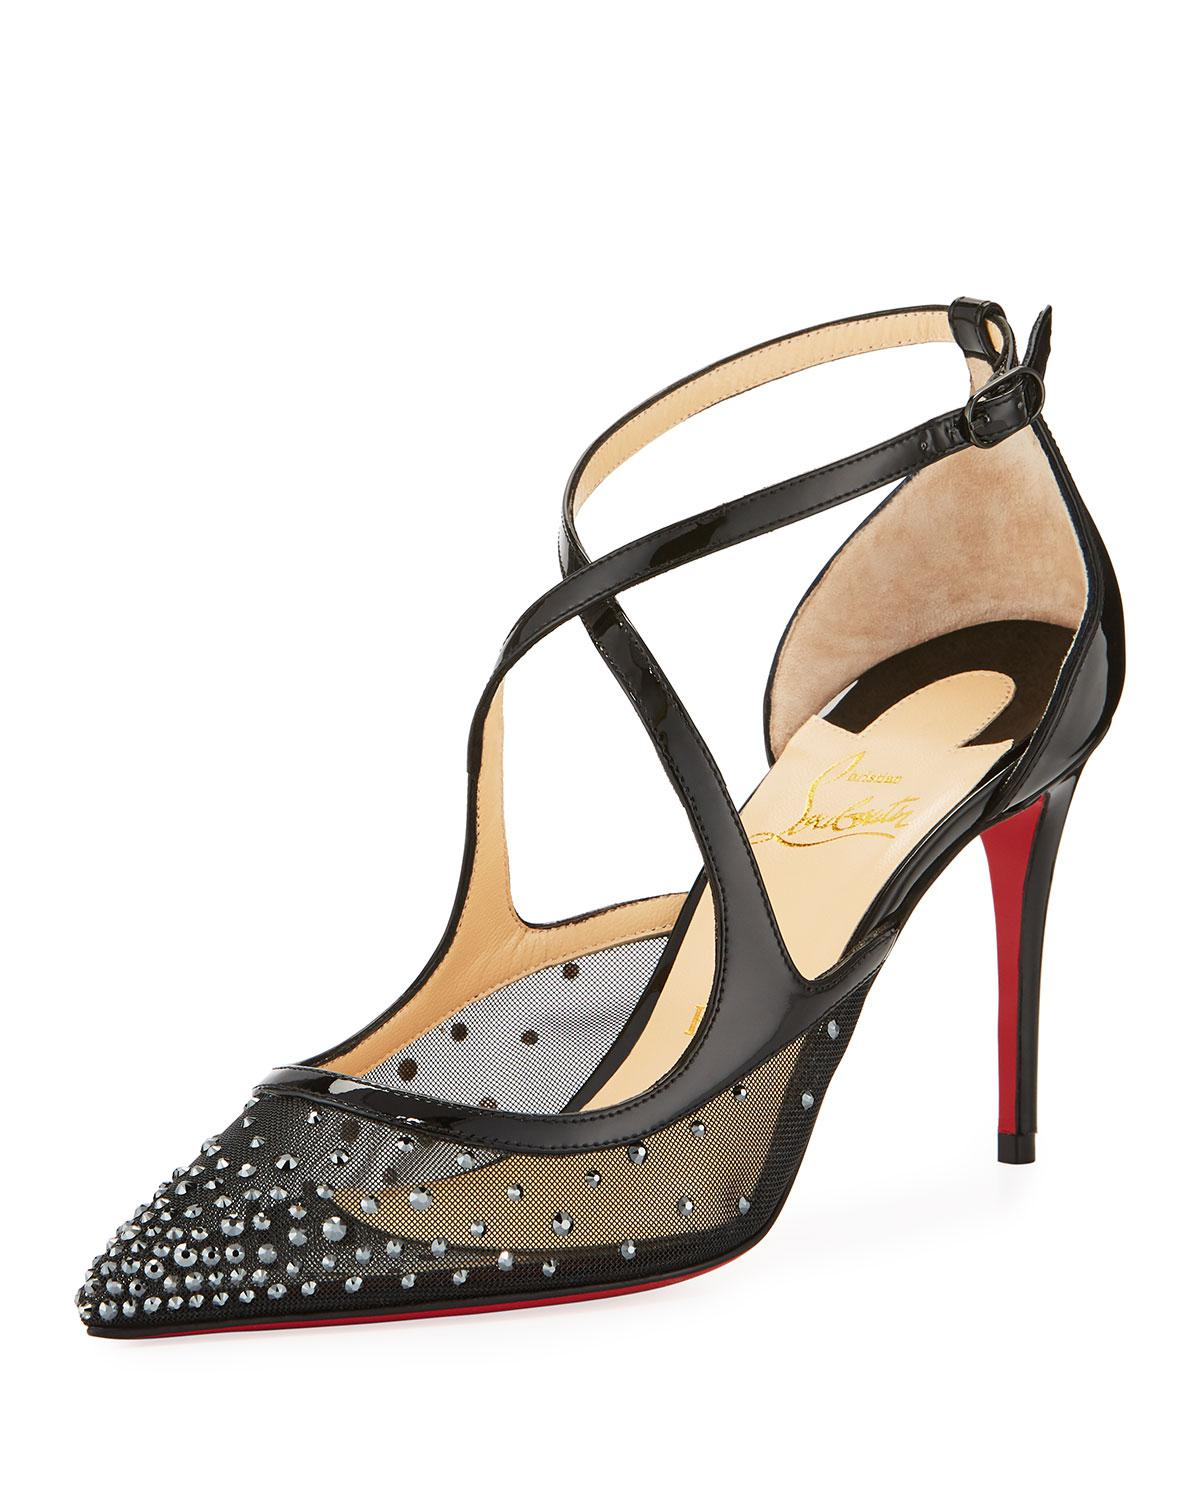 99d1ed4b419 Lyst - Christian Louboutin Twistissima Strass Red Sole Pump in Black